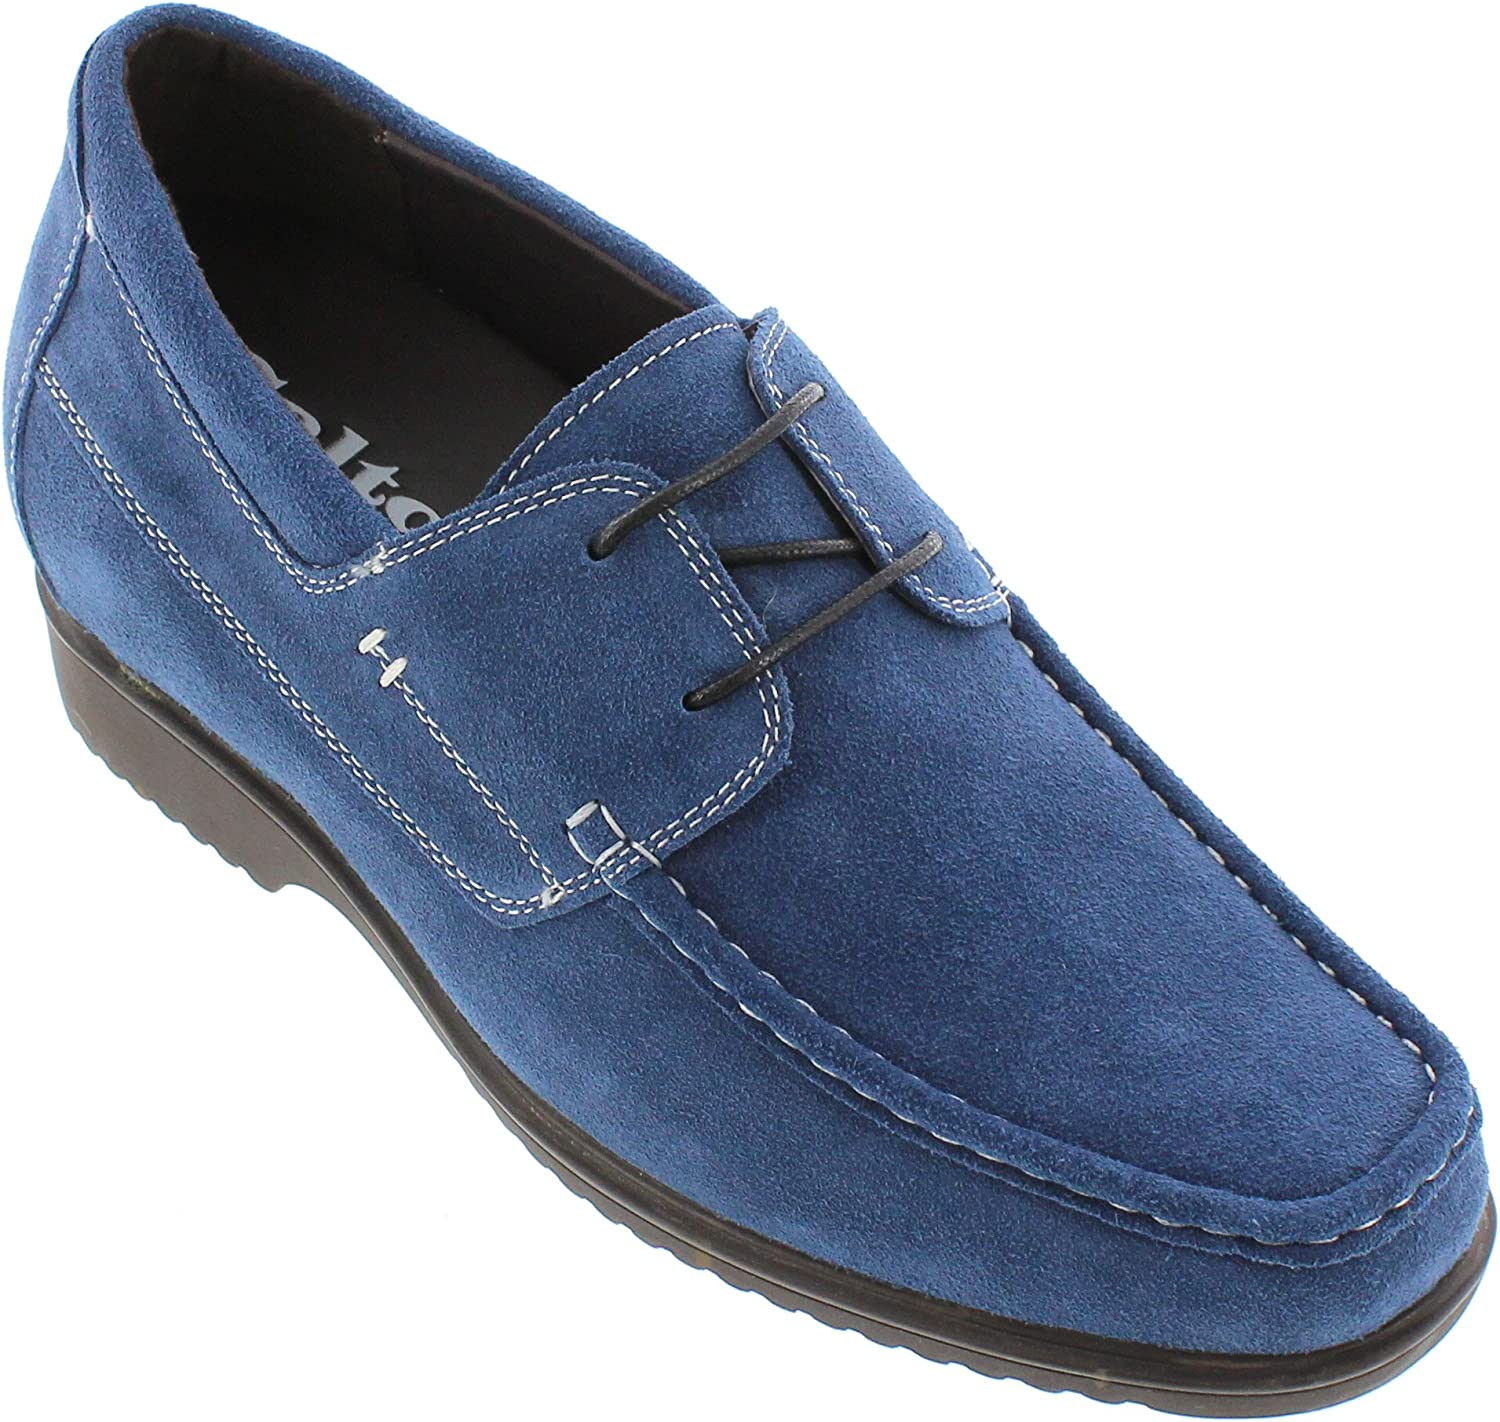 CALTO - G61213-3.3 Inches Taller - Size 11 D US - Height Increasing Elevator shoes (Nubuck bluee Lace-up Casual shoes)